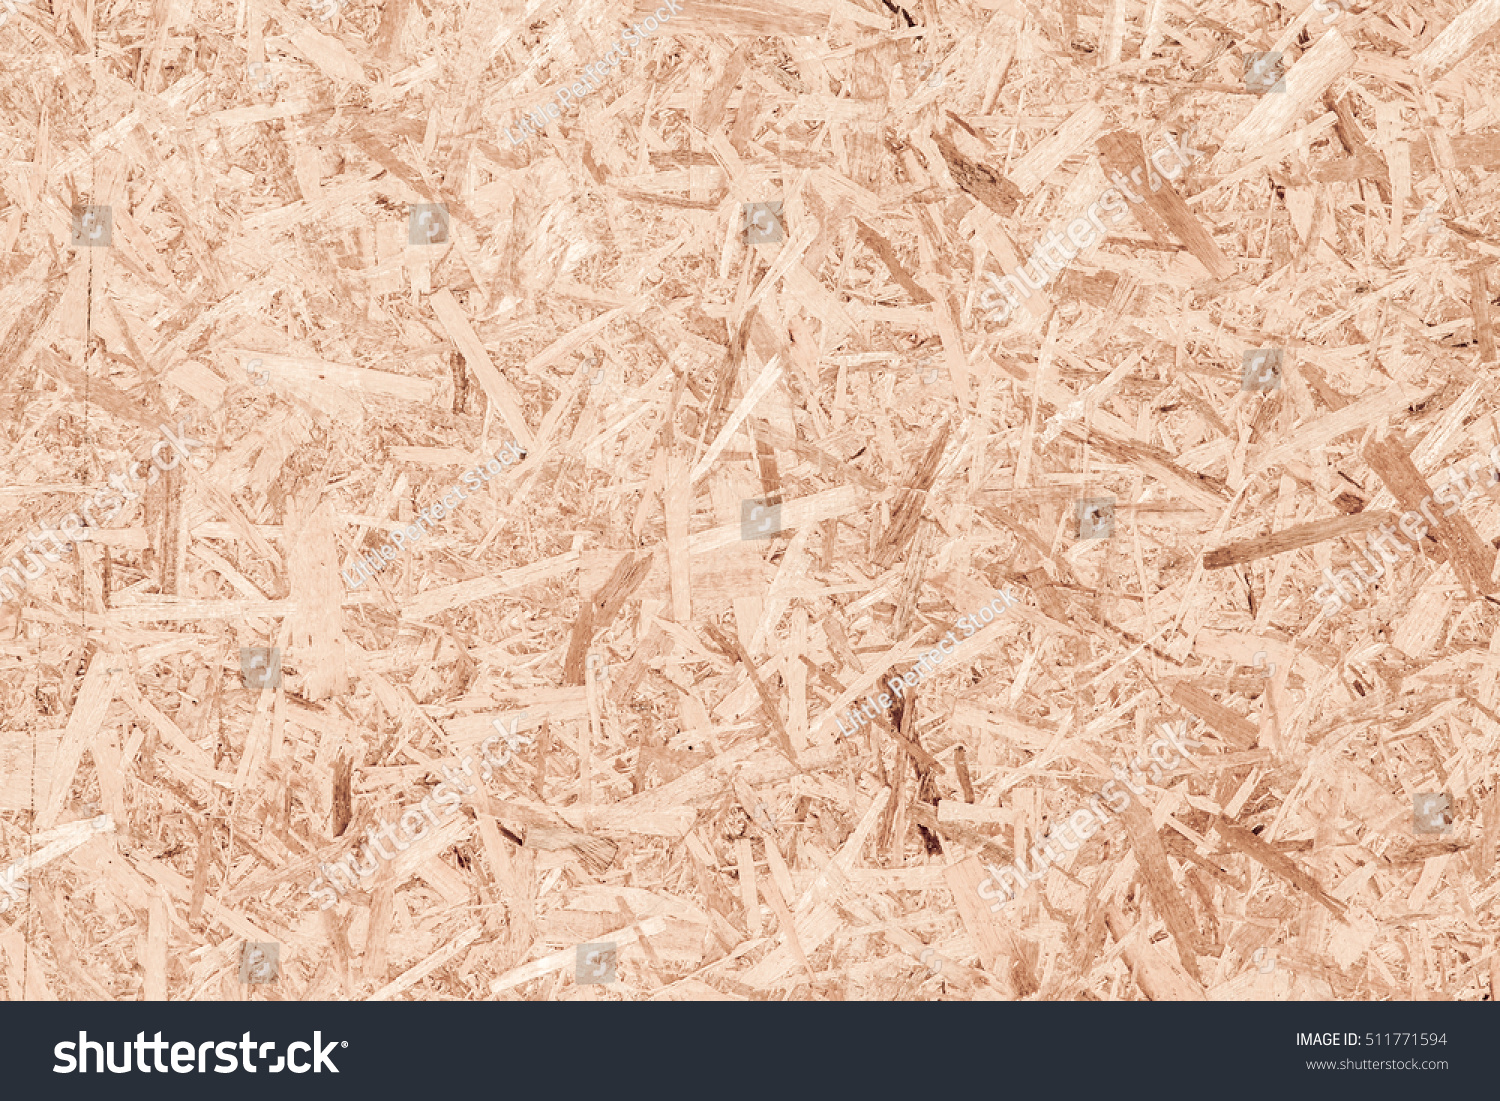 Recycled wood board background stock photo 511771594 for Recycled wood board